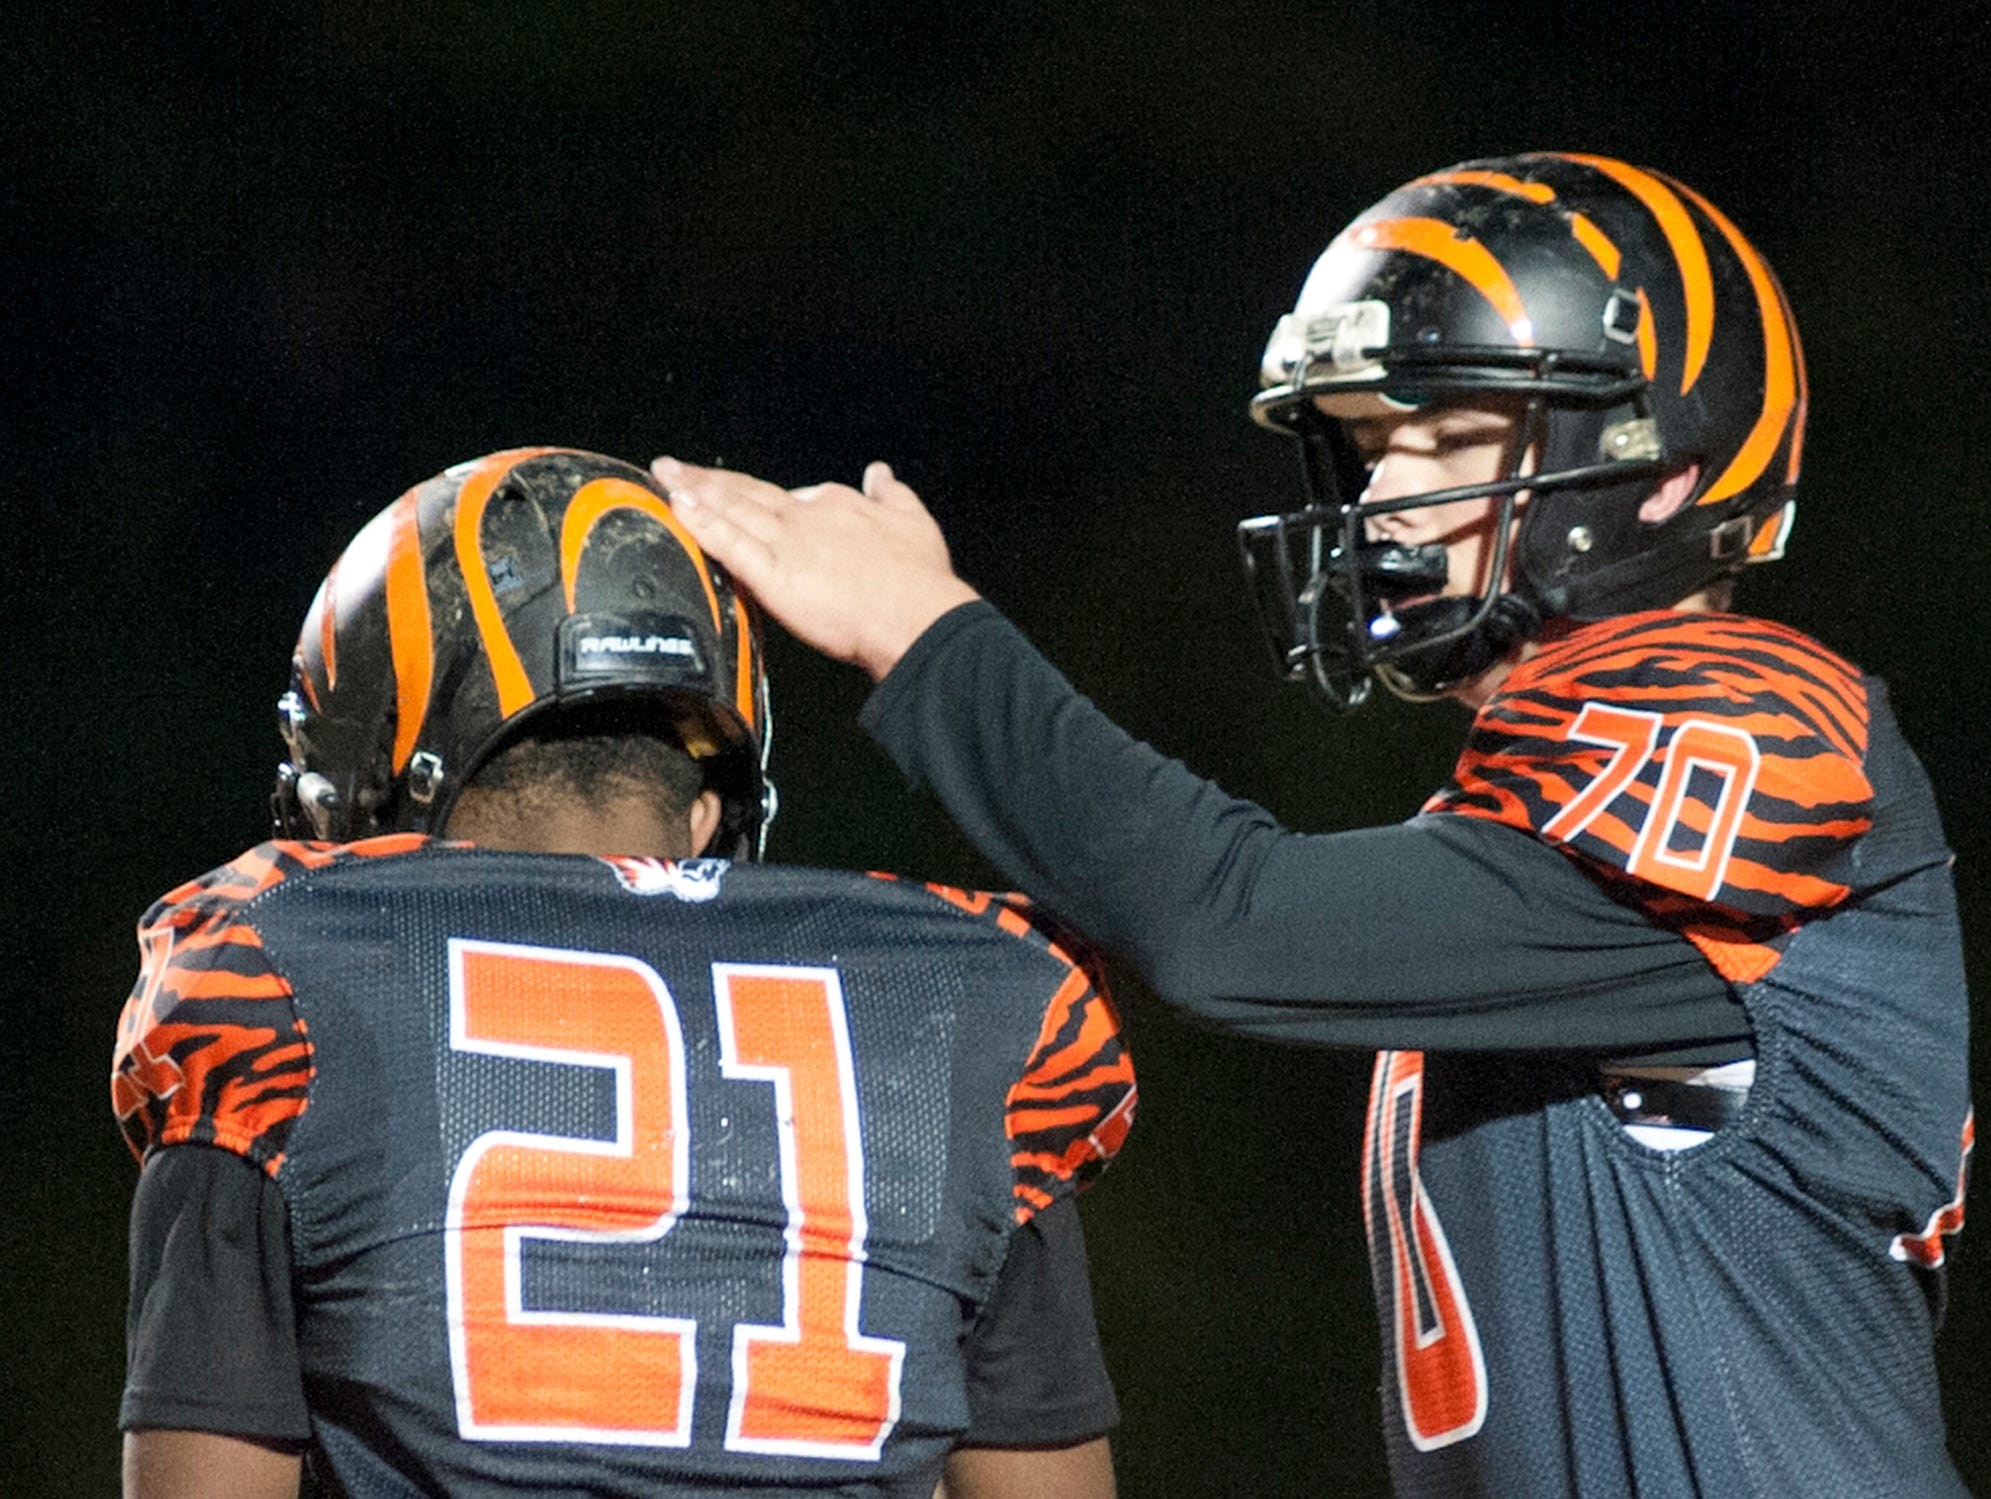 Fern Creek running back Terrance Mitchell scores and is congratulated in the end zone by Fern Creek offensive lineman Alex Martin. Nov. 9, 2018